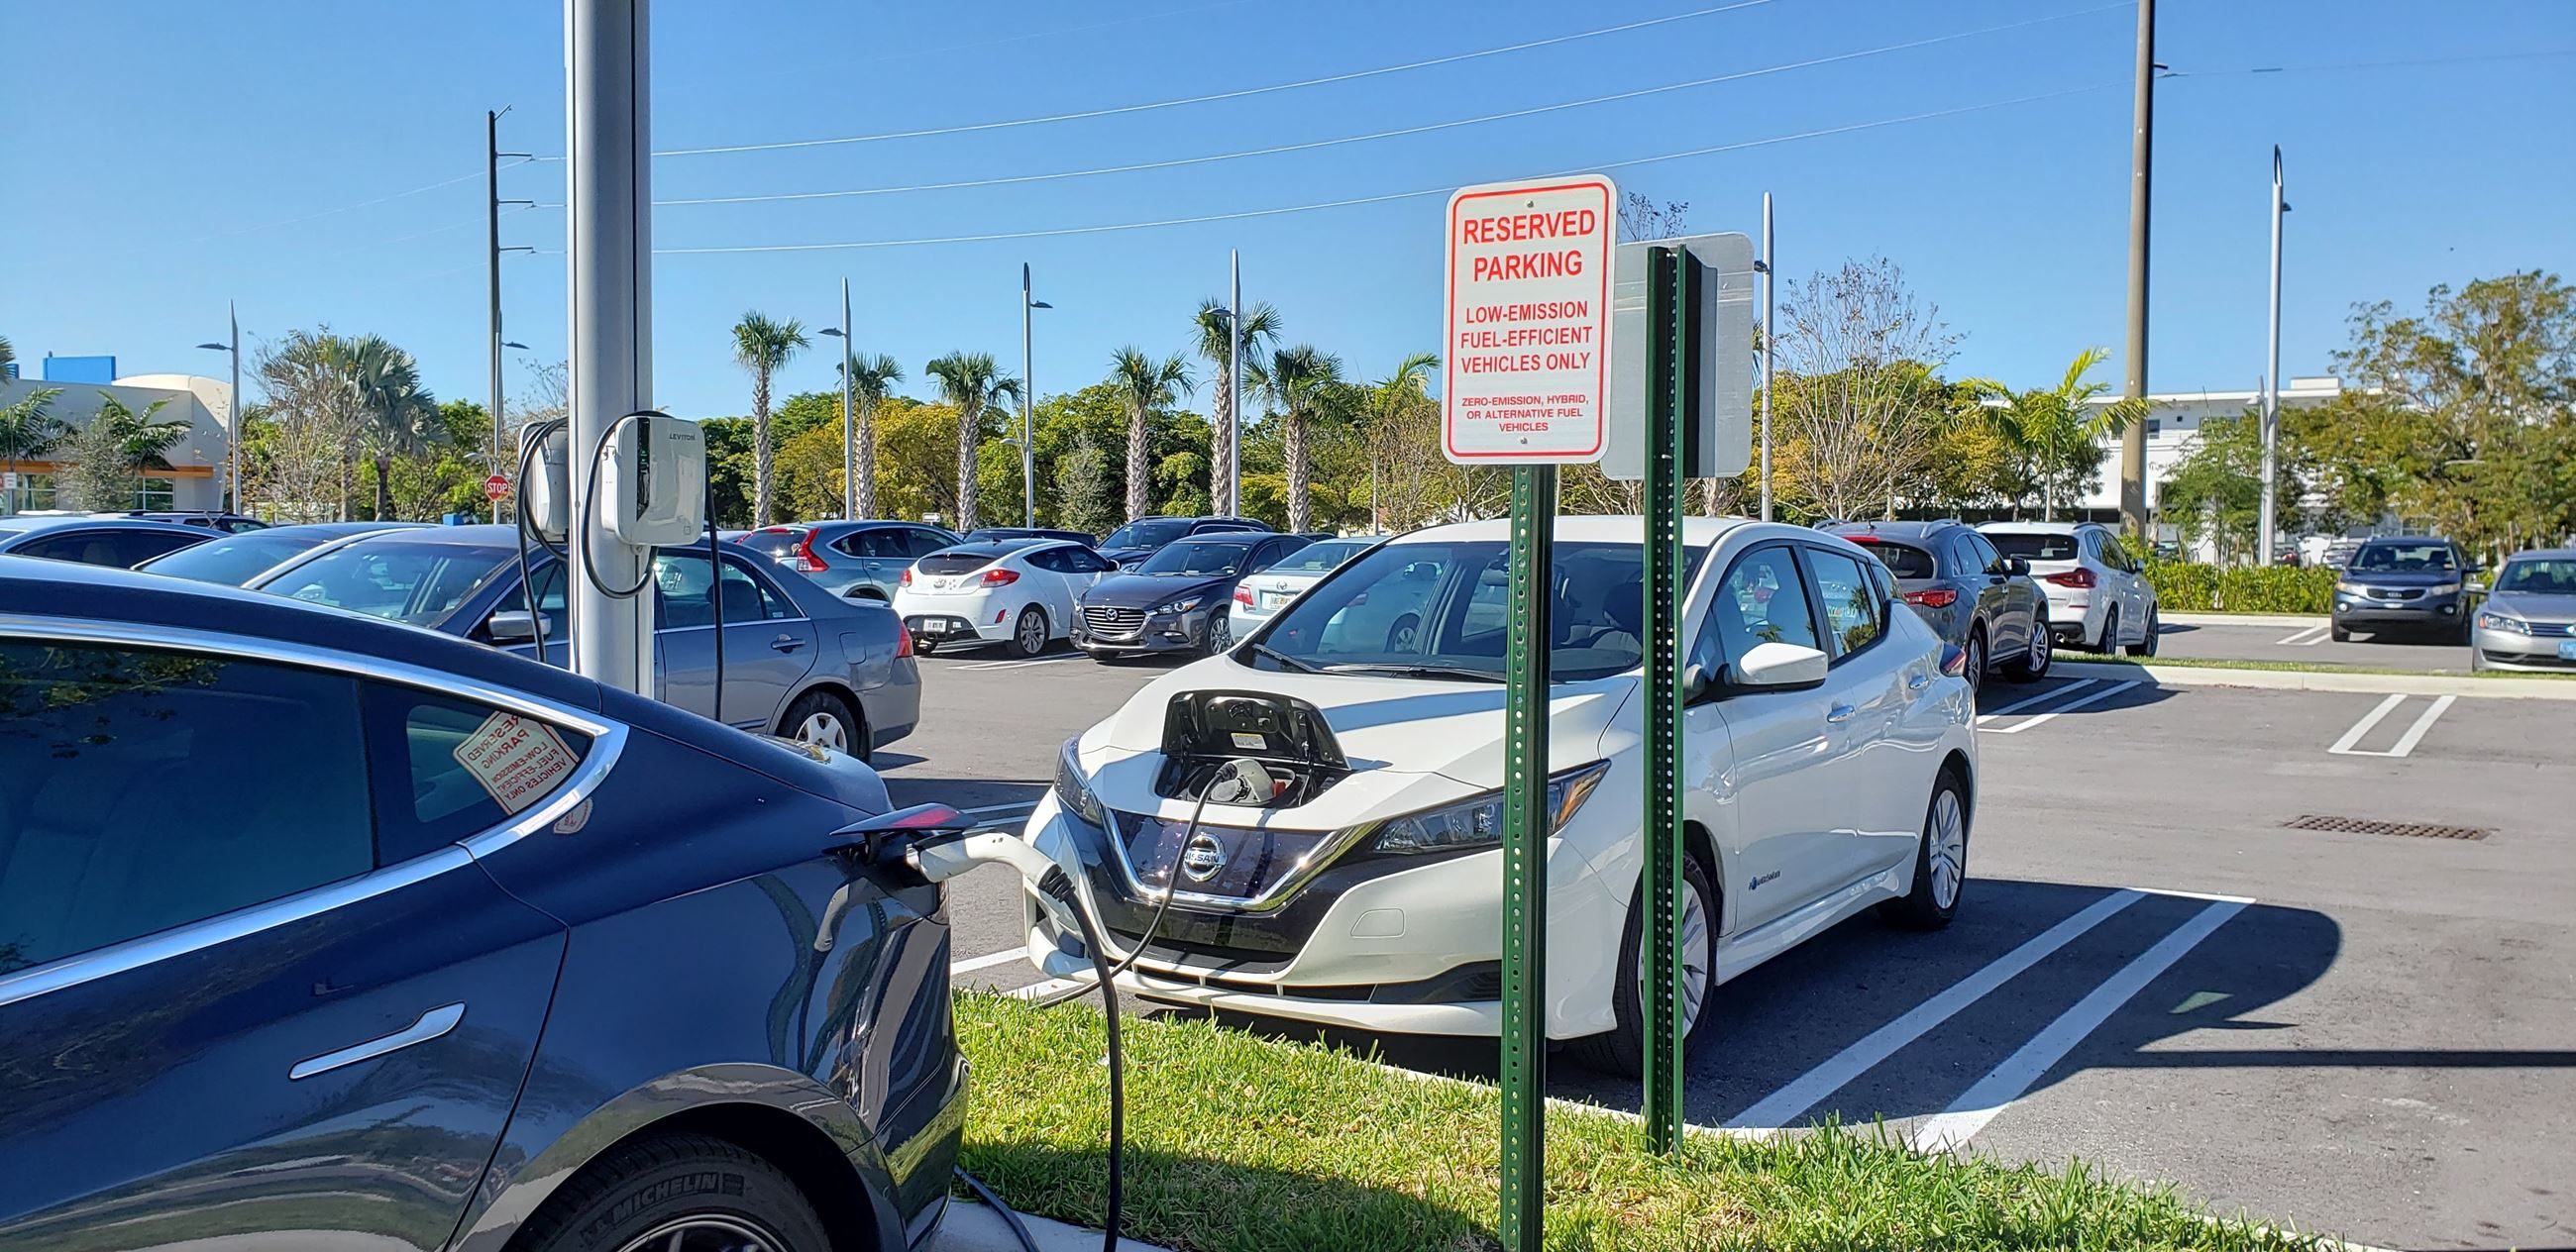 Electric vehicles plugged in to charge